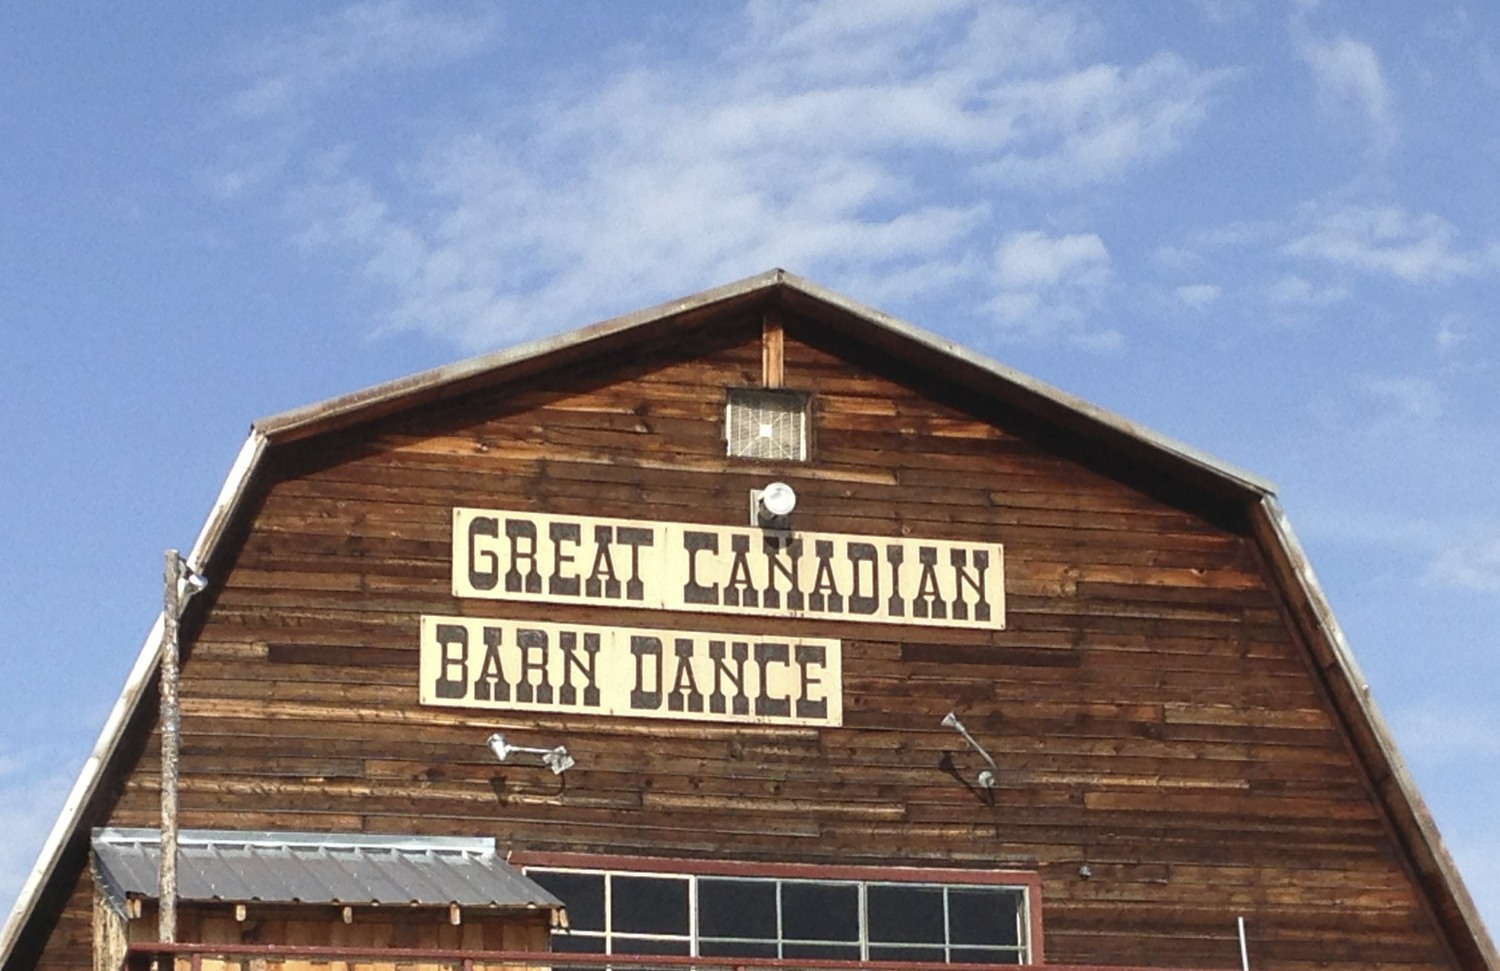 Great Canadian Barn Dance Town Of Cardston